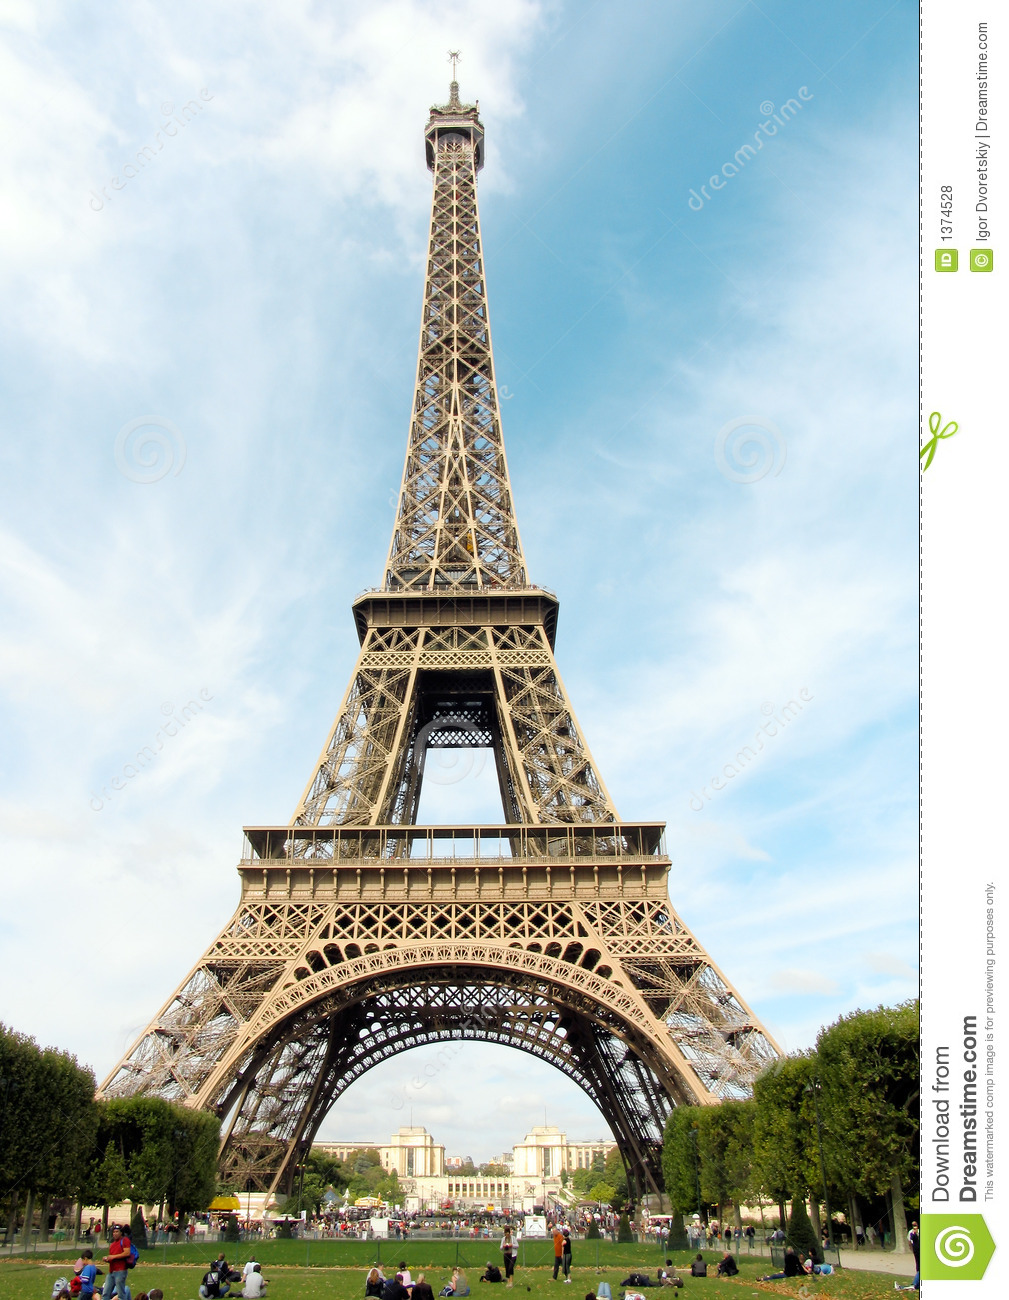 france paris eiffel tower royalty free stock photos. Black Bedroom Furniture Sets. Home Design Ideas